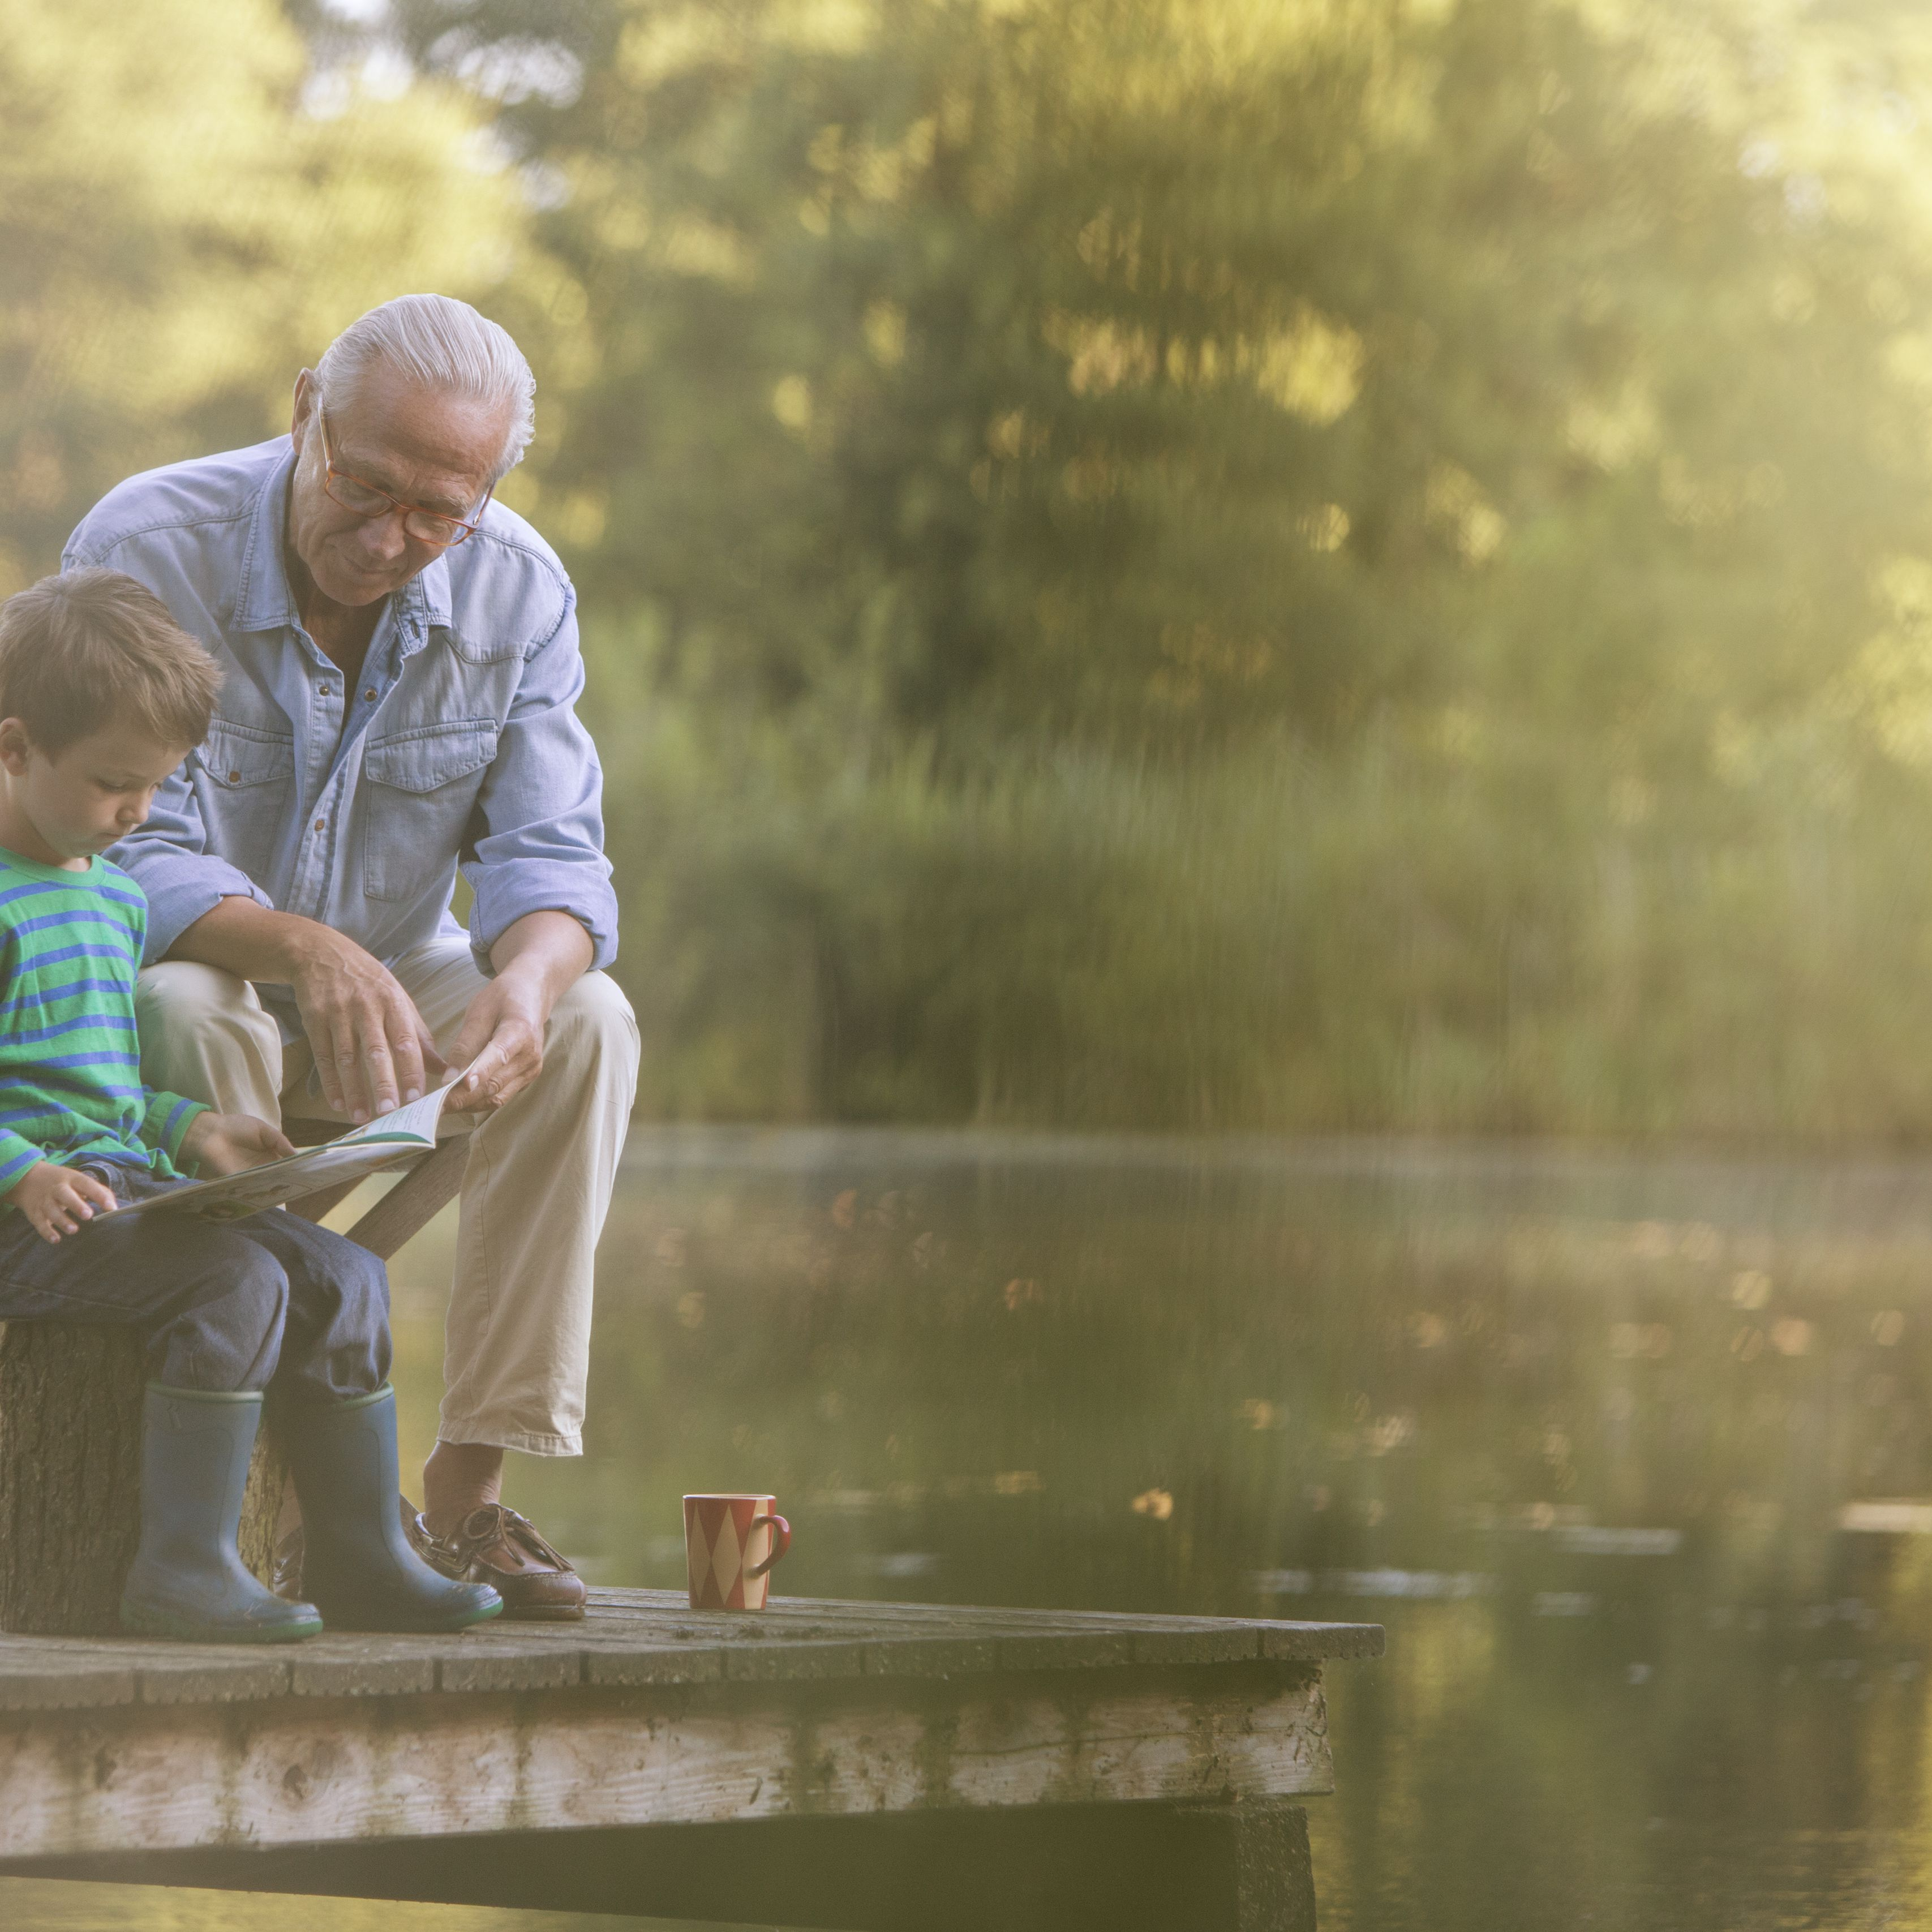 6 Factors of Grandparent-Grandchild Closeness